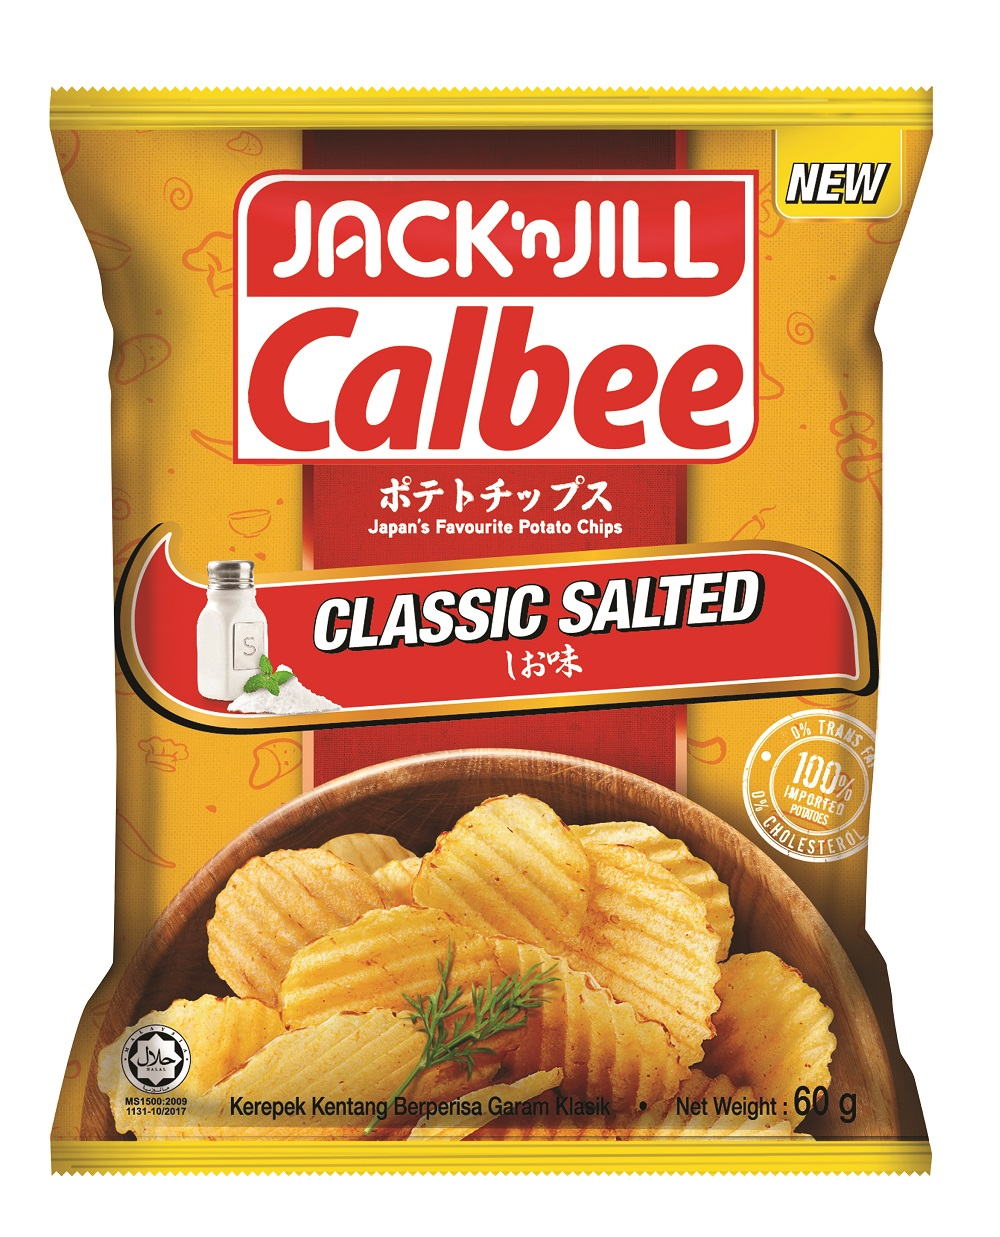 Jack 'n Jill Calbee is available in Classic Salted, Smokey BBQ and Flamin' Chilli.